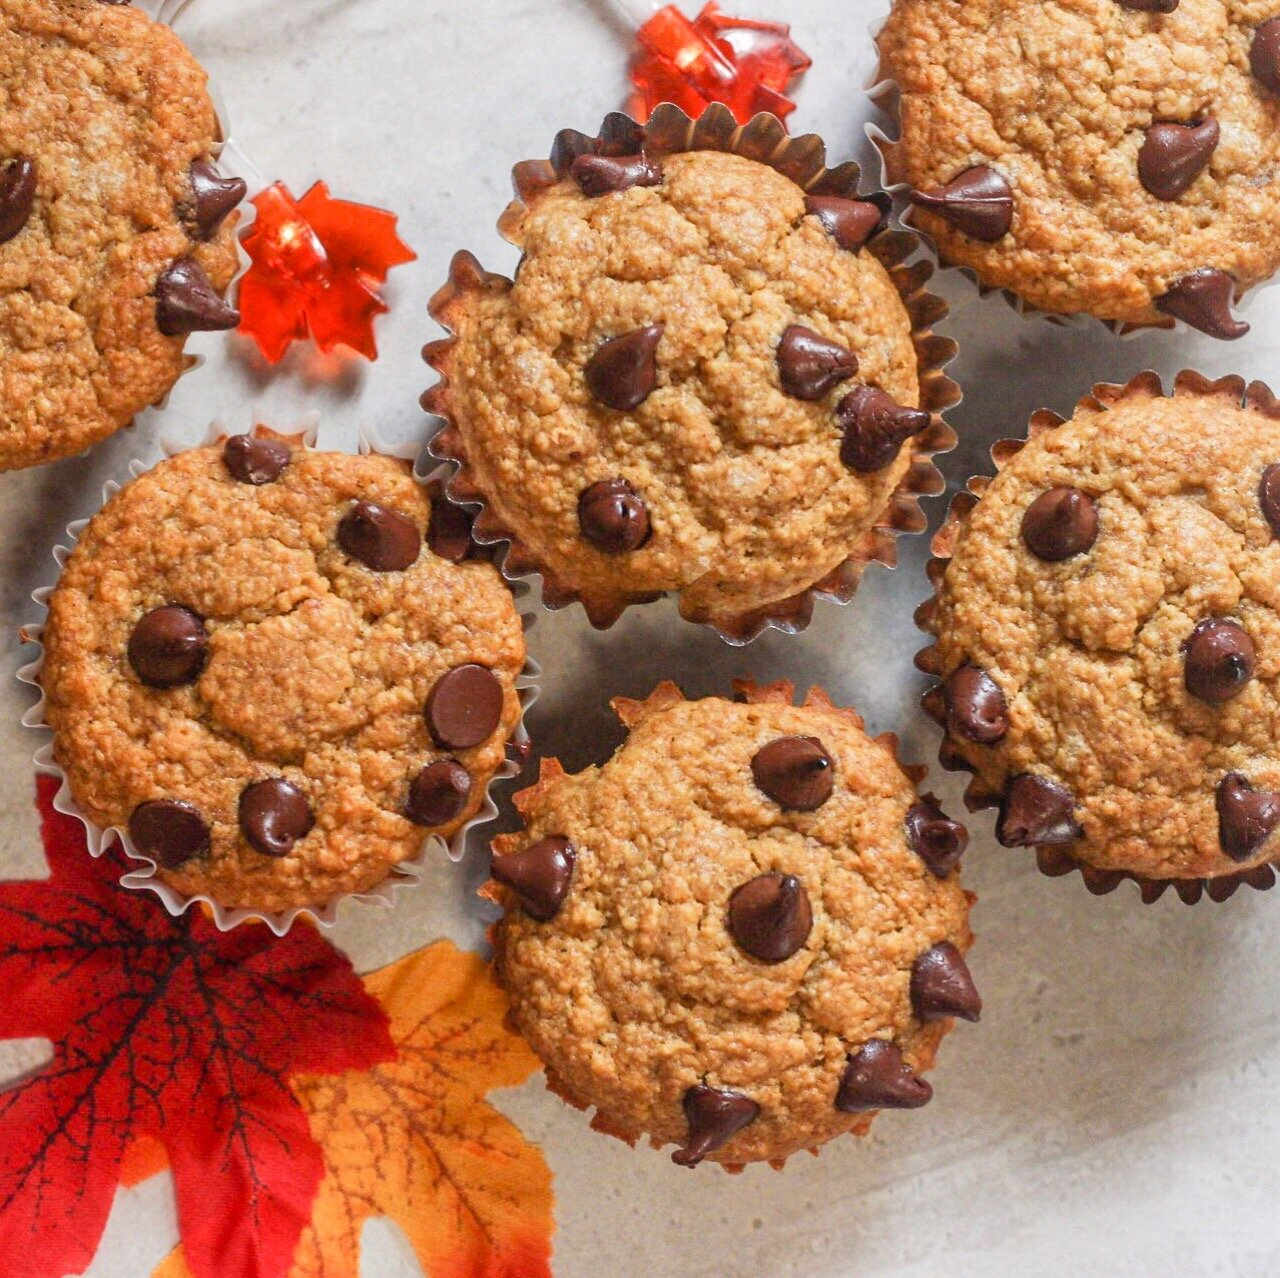 Pumpkin and Chocolate Muffins